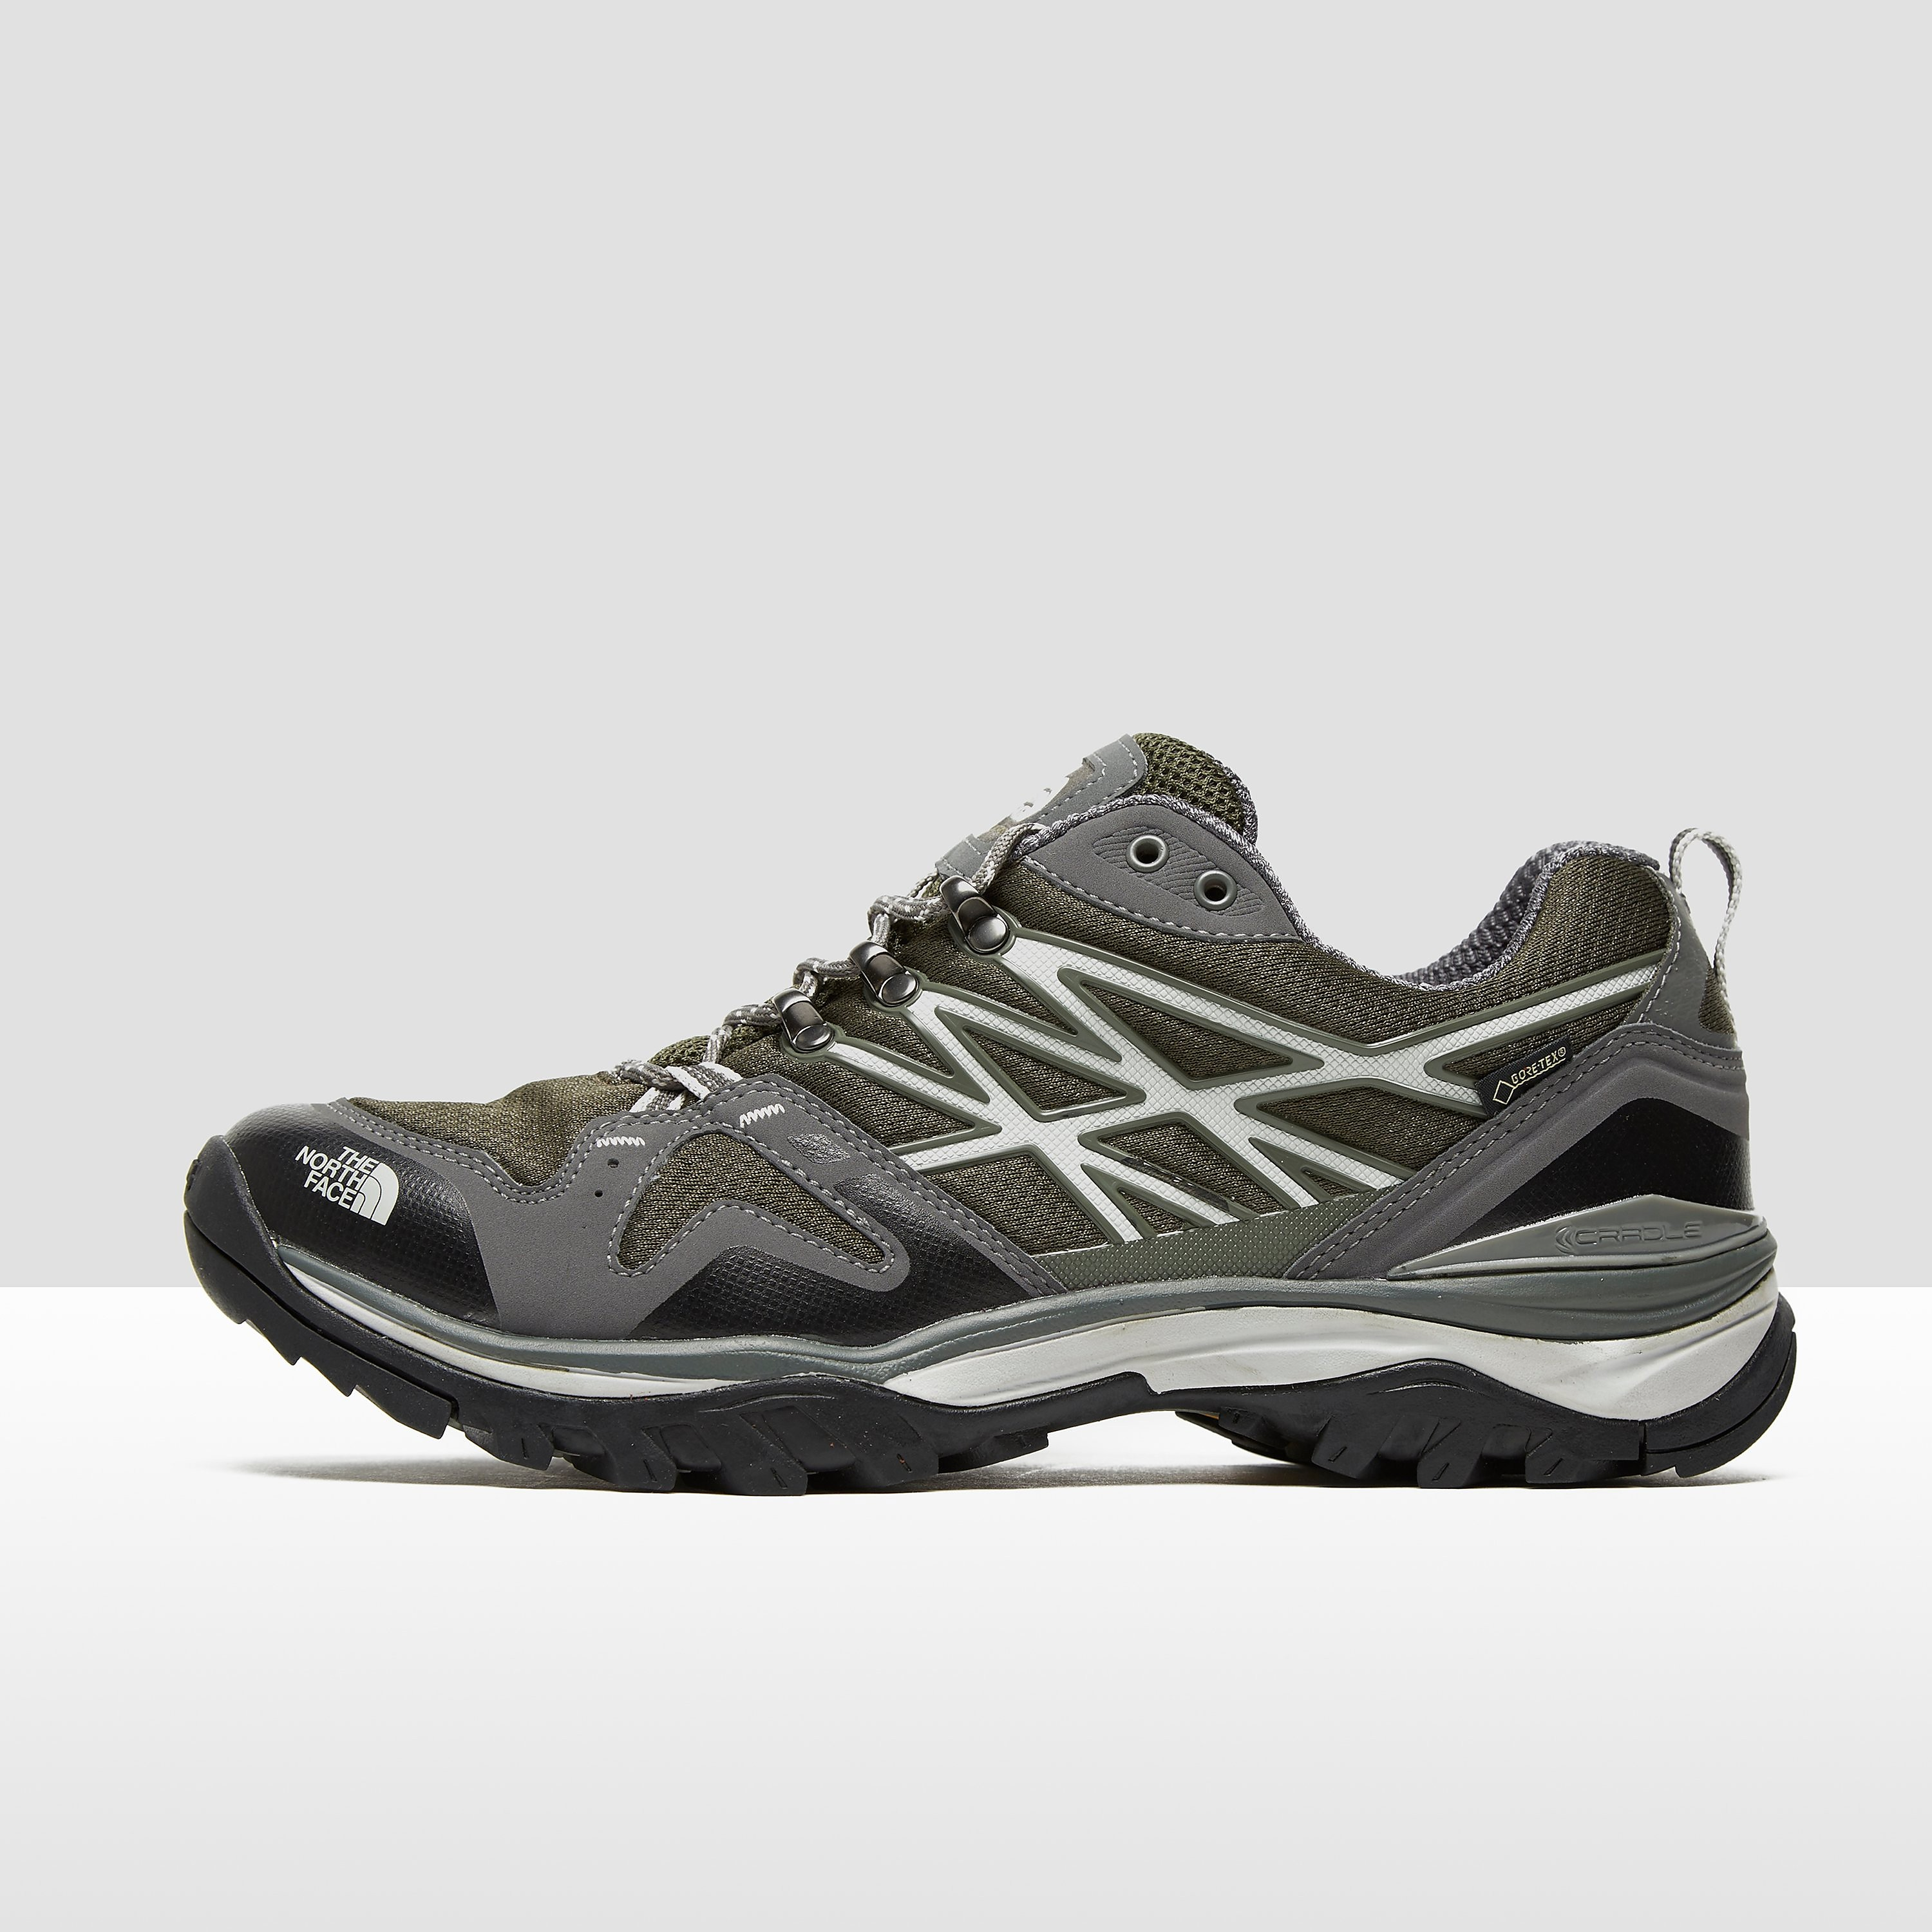 The North Face Hedgehog Fastpack GTX Men's Hiking Shoe